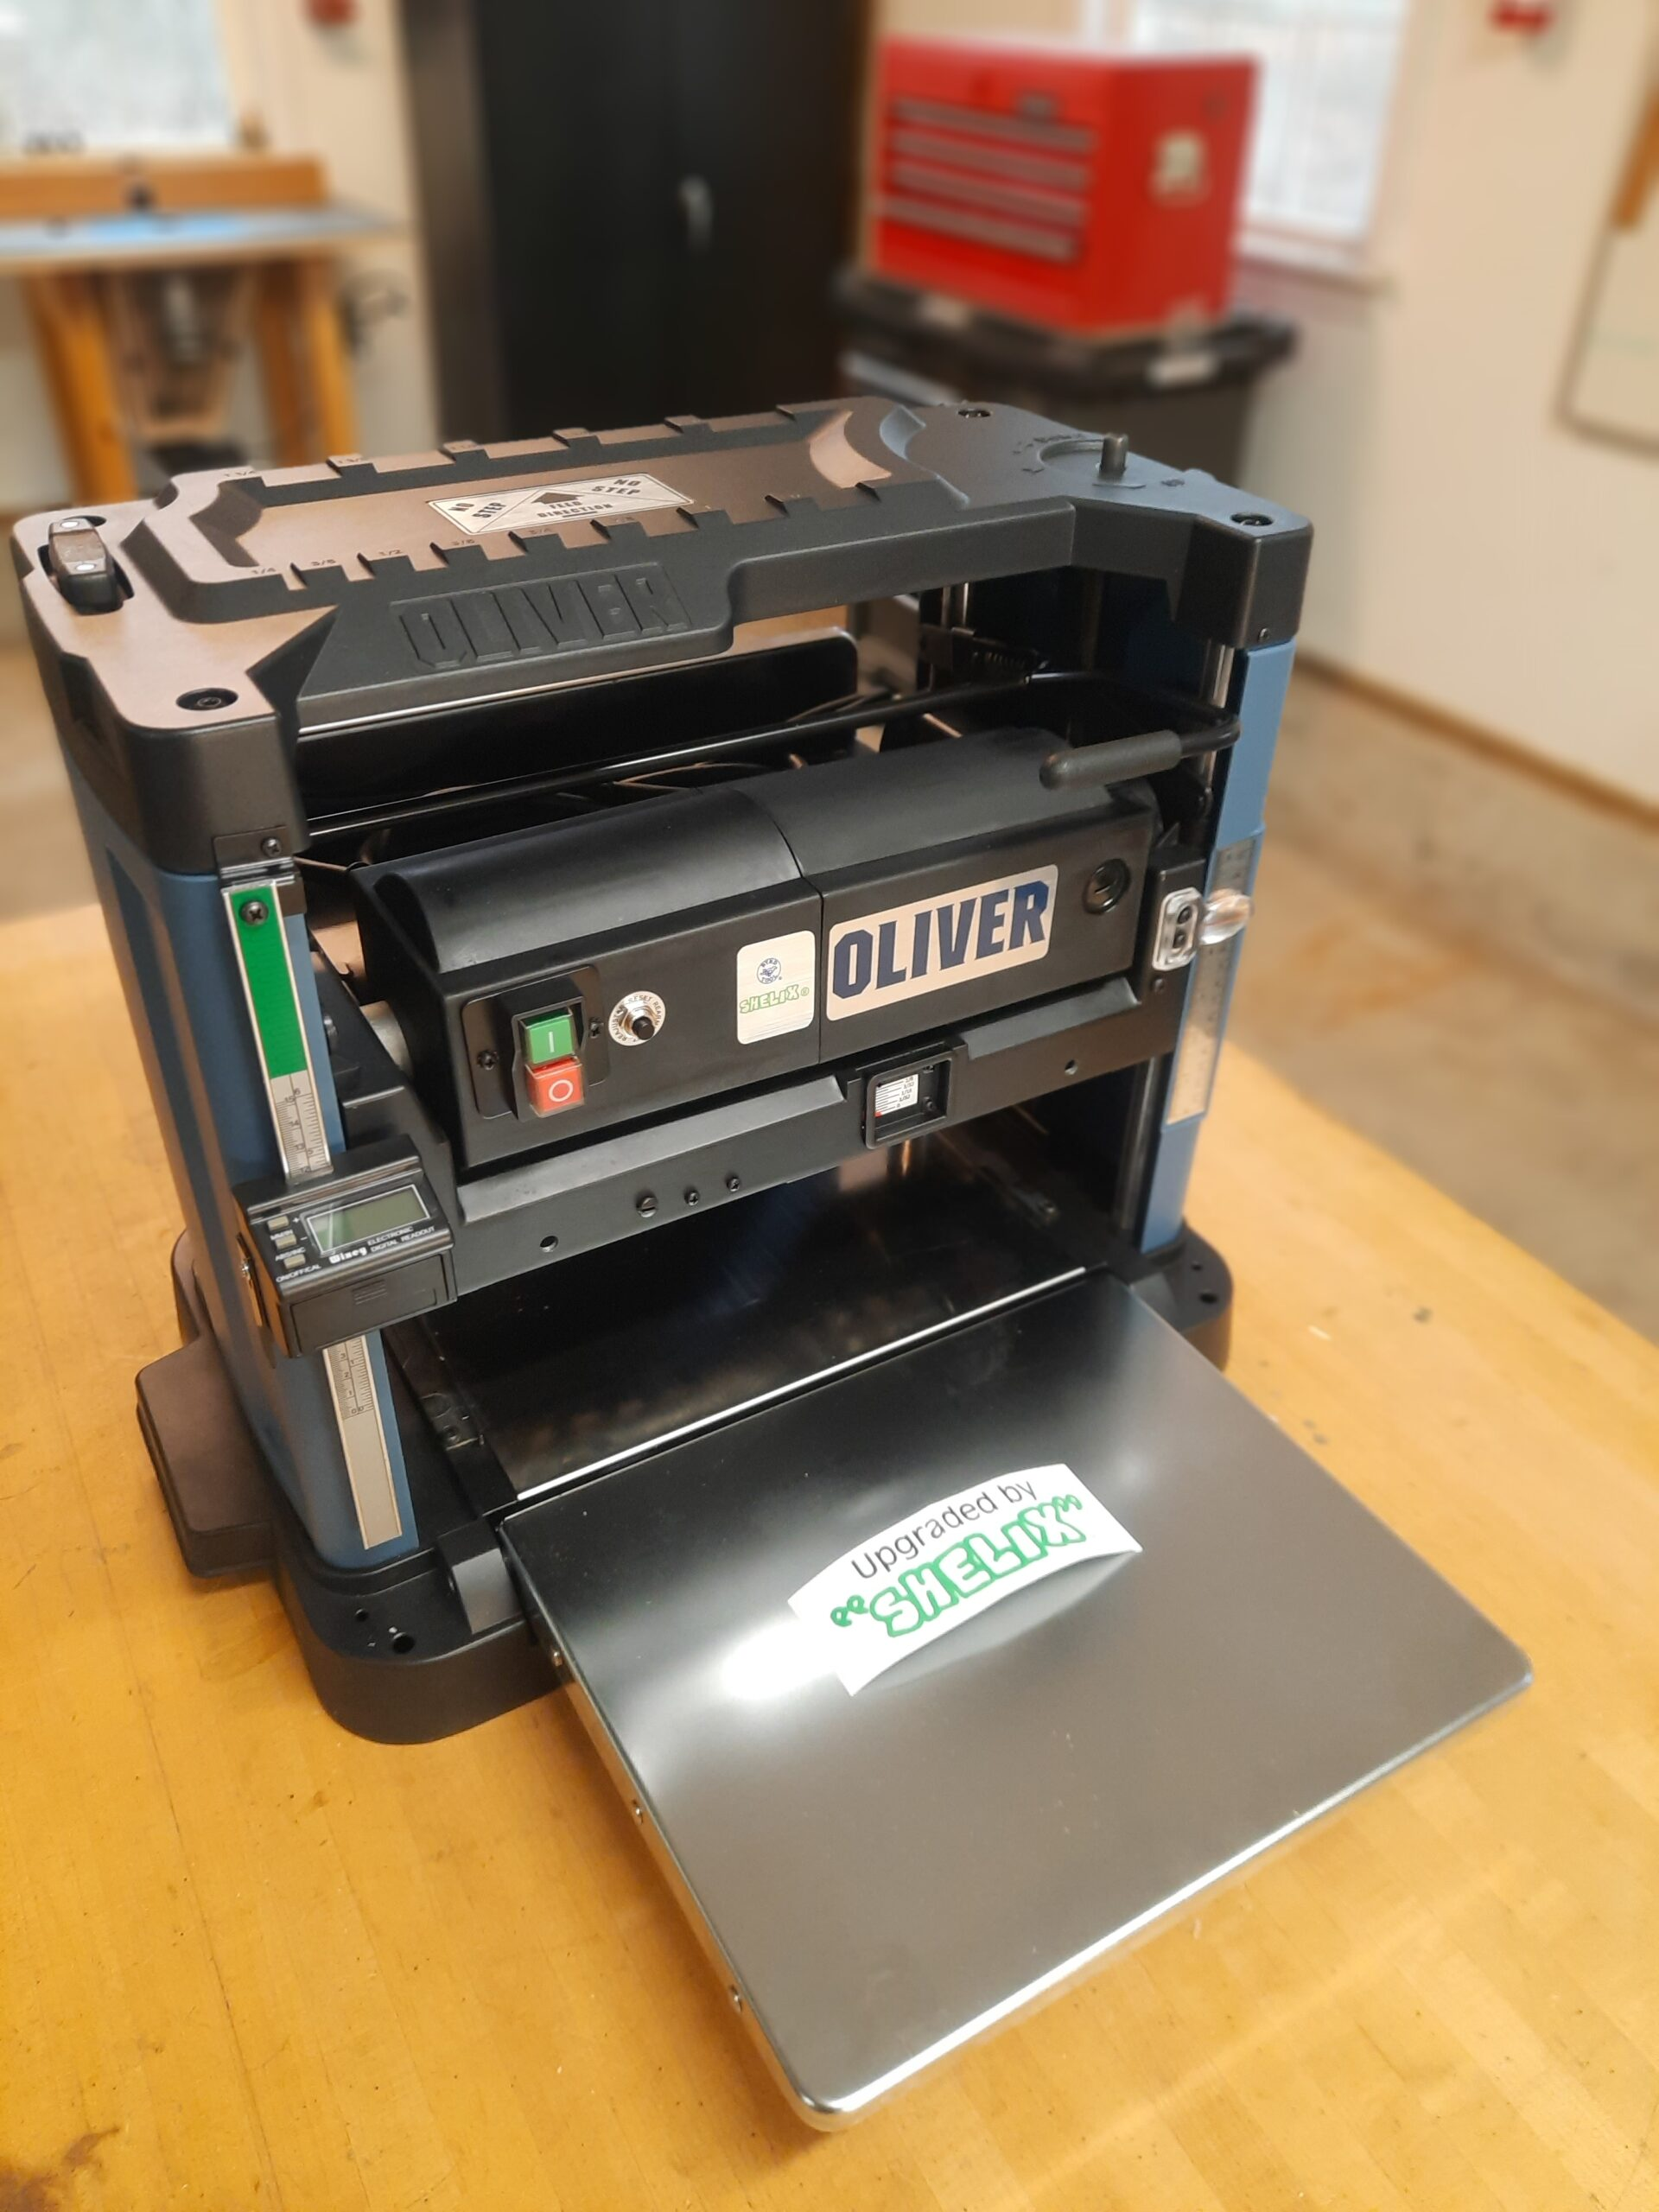 Oliver Machinery 12 5 Planer With Shelix Cutterhead Model 10044 Review Tool Box Buzz